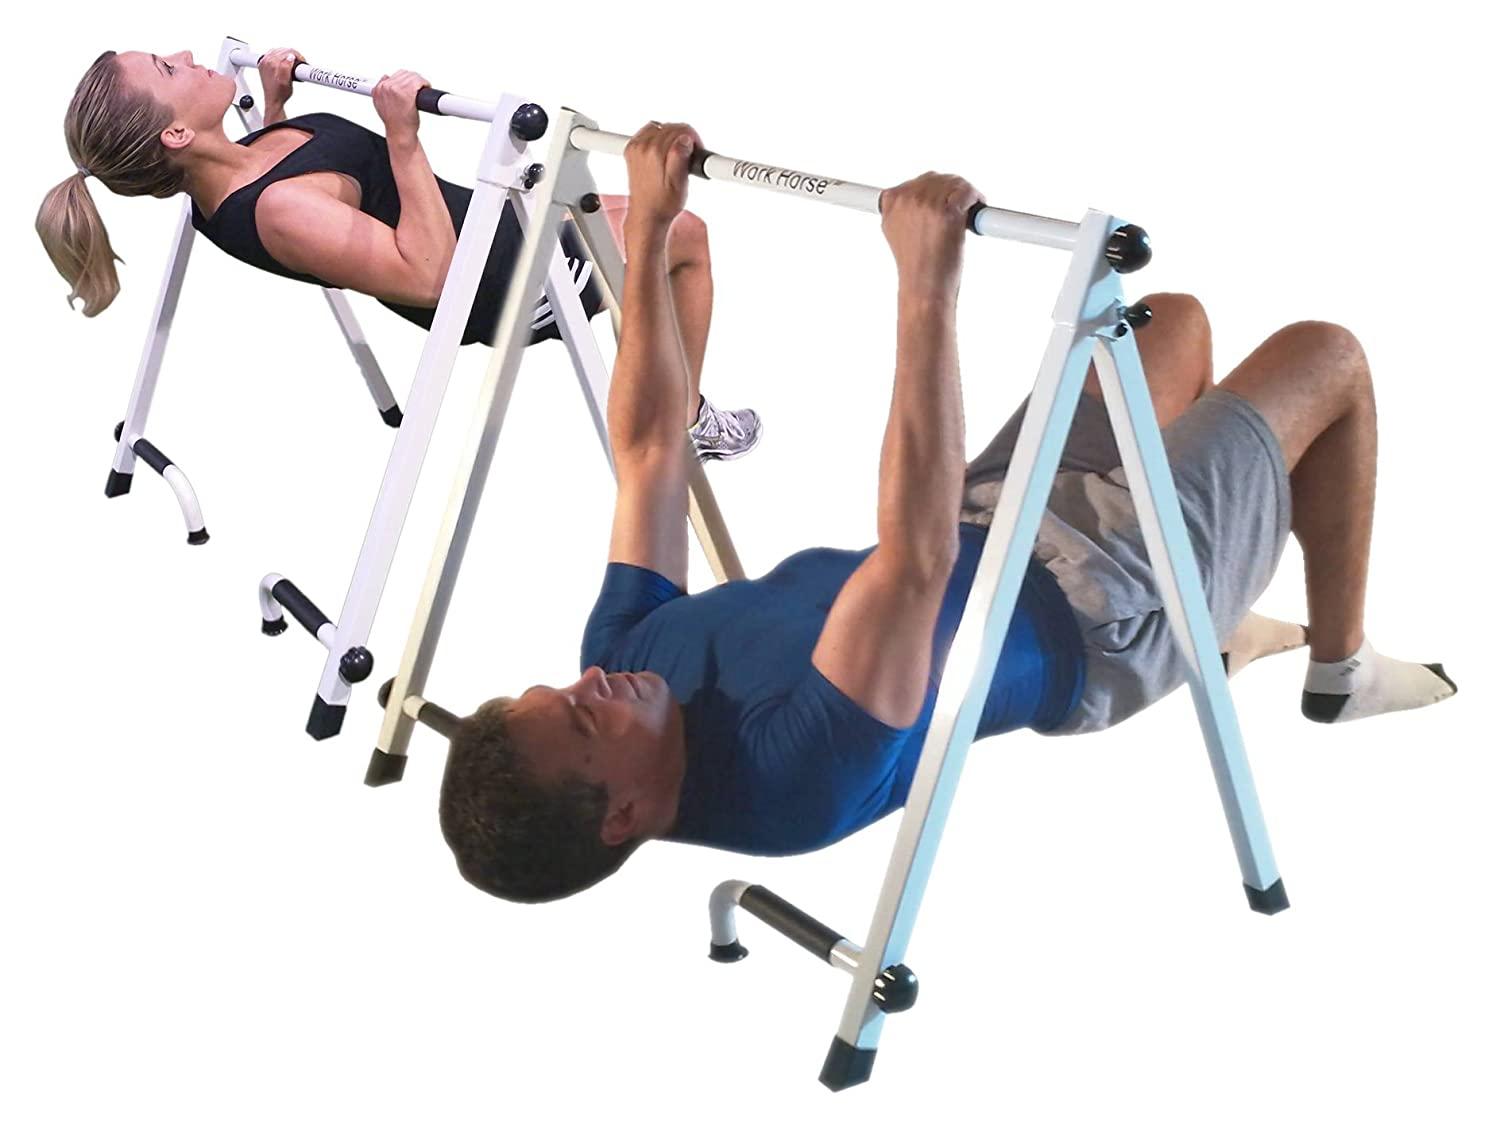 Amazon.com : Portable Pull-up & Push-up Bar - For Inverted Pull-ups ...